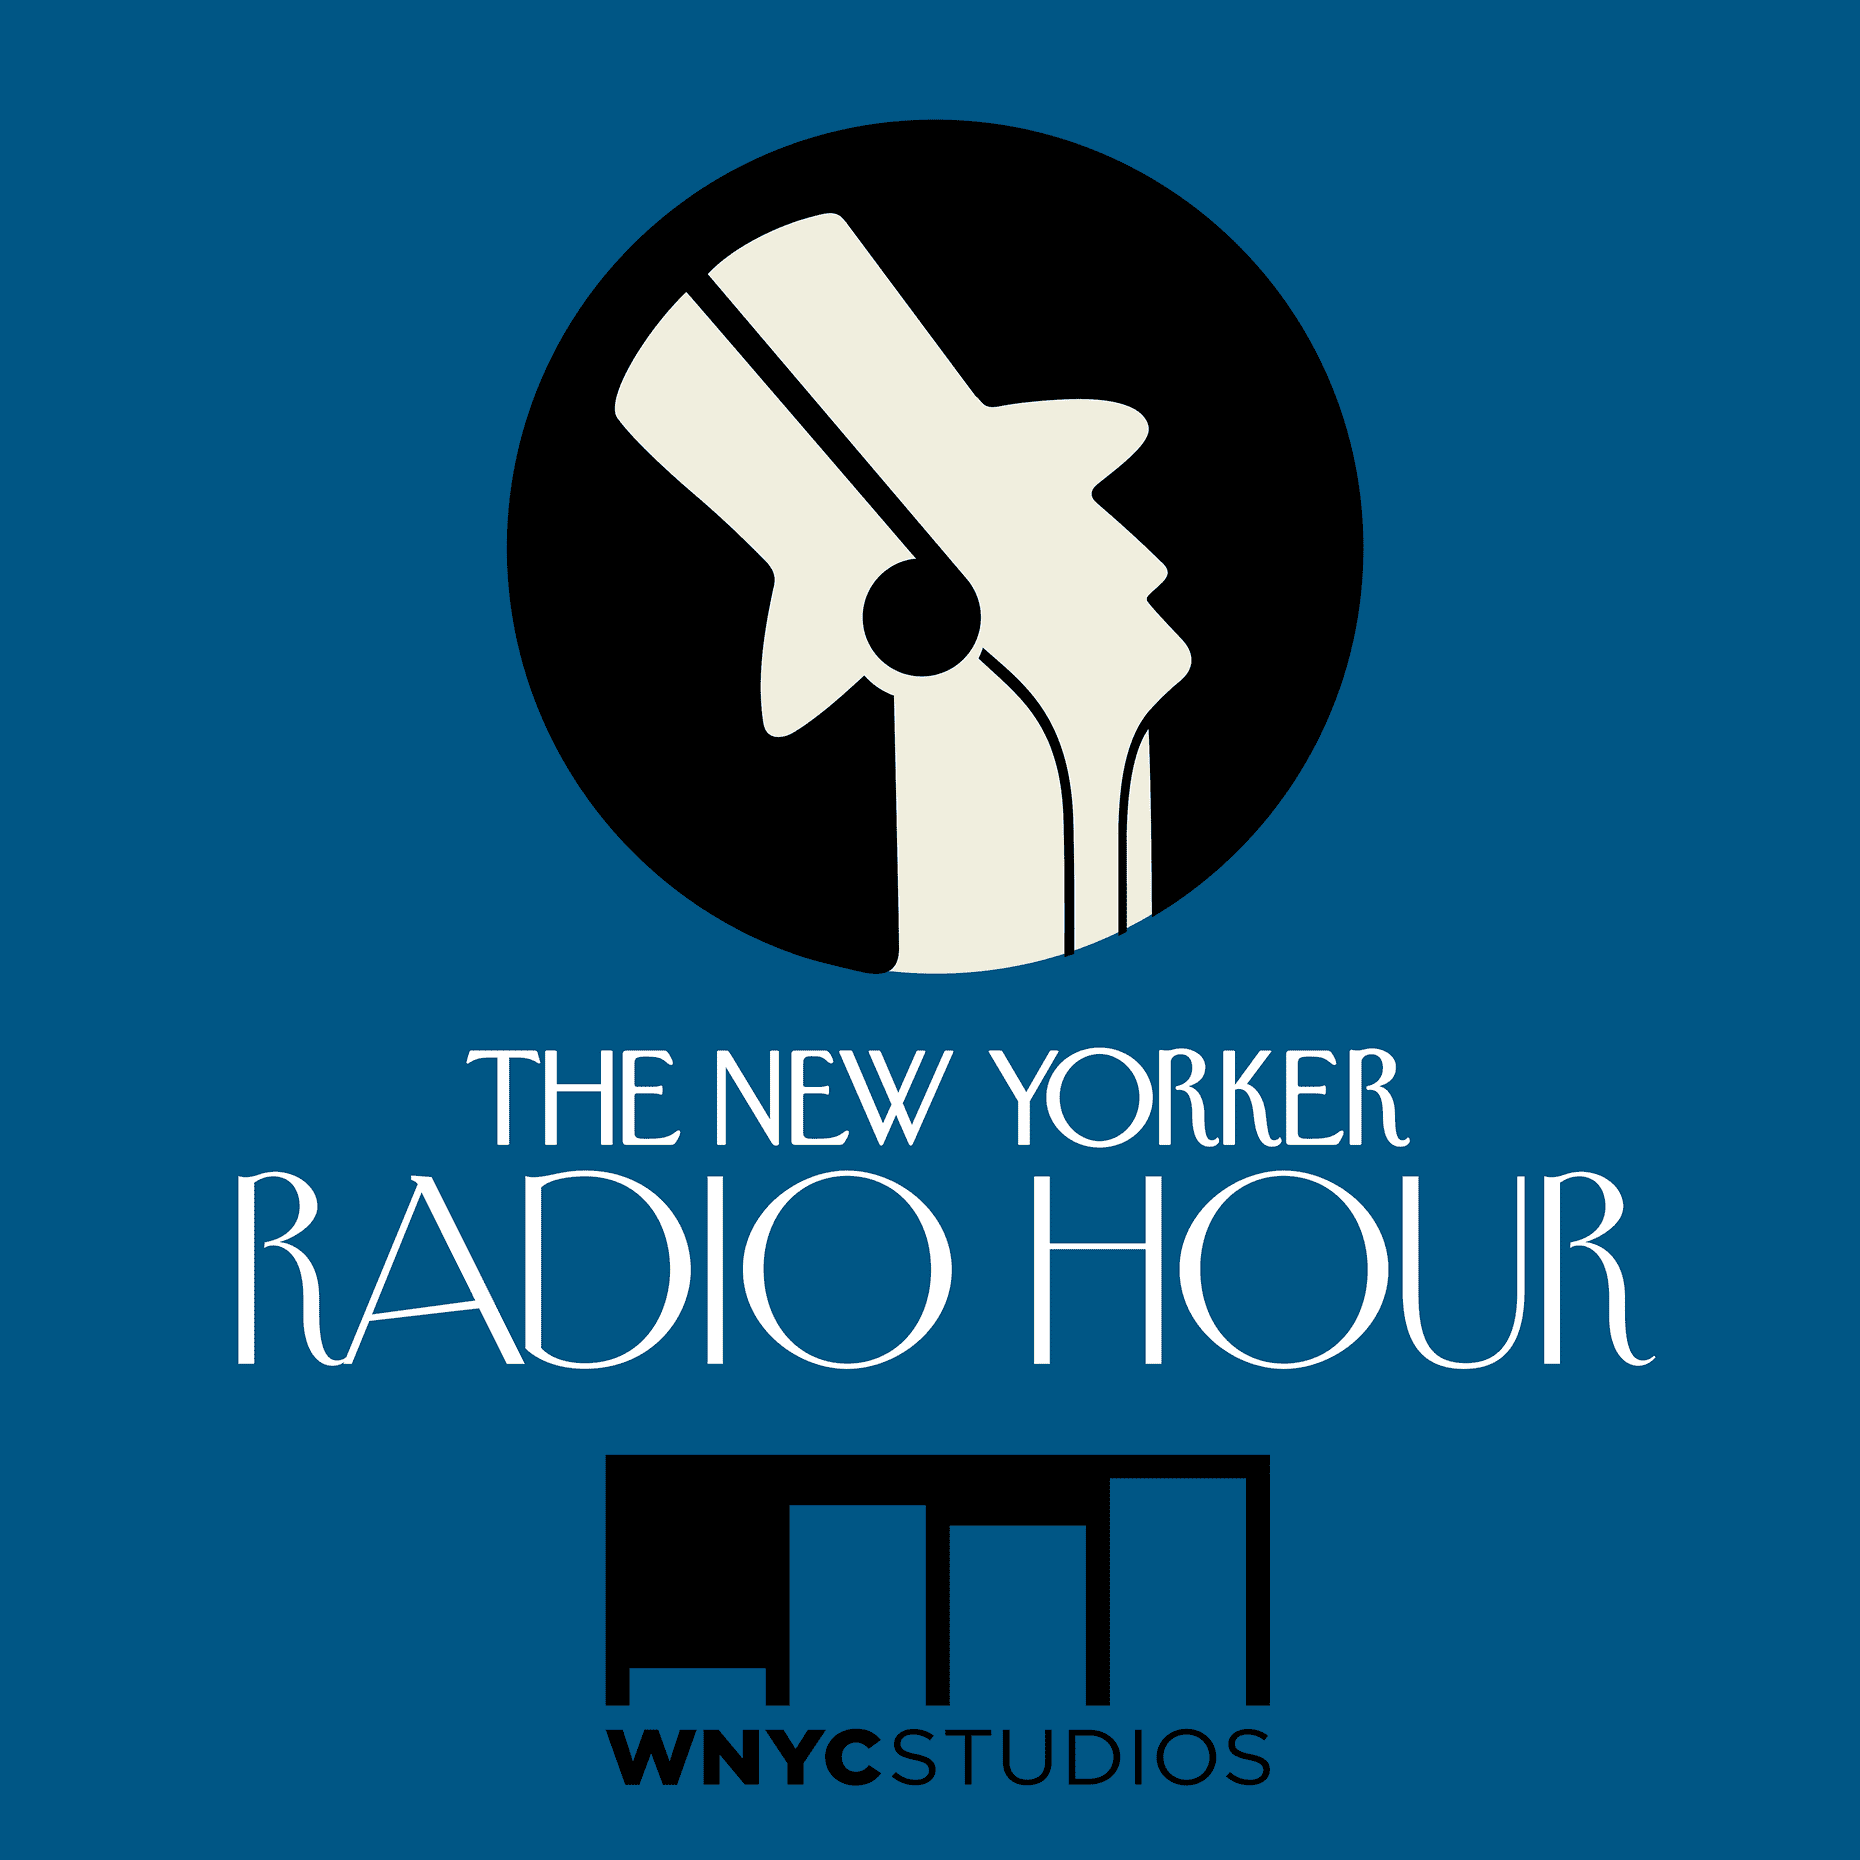 I Work From Home New Yorker Radio Hour